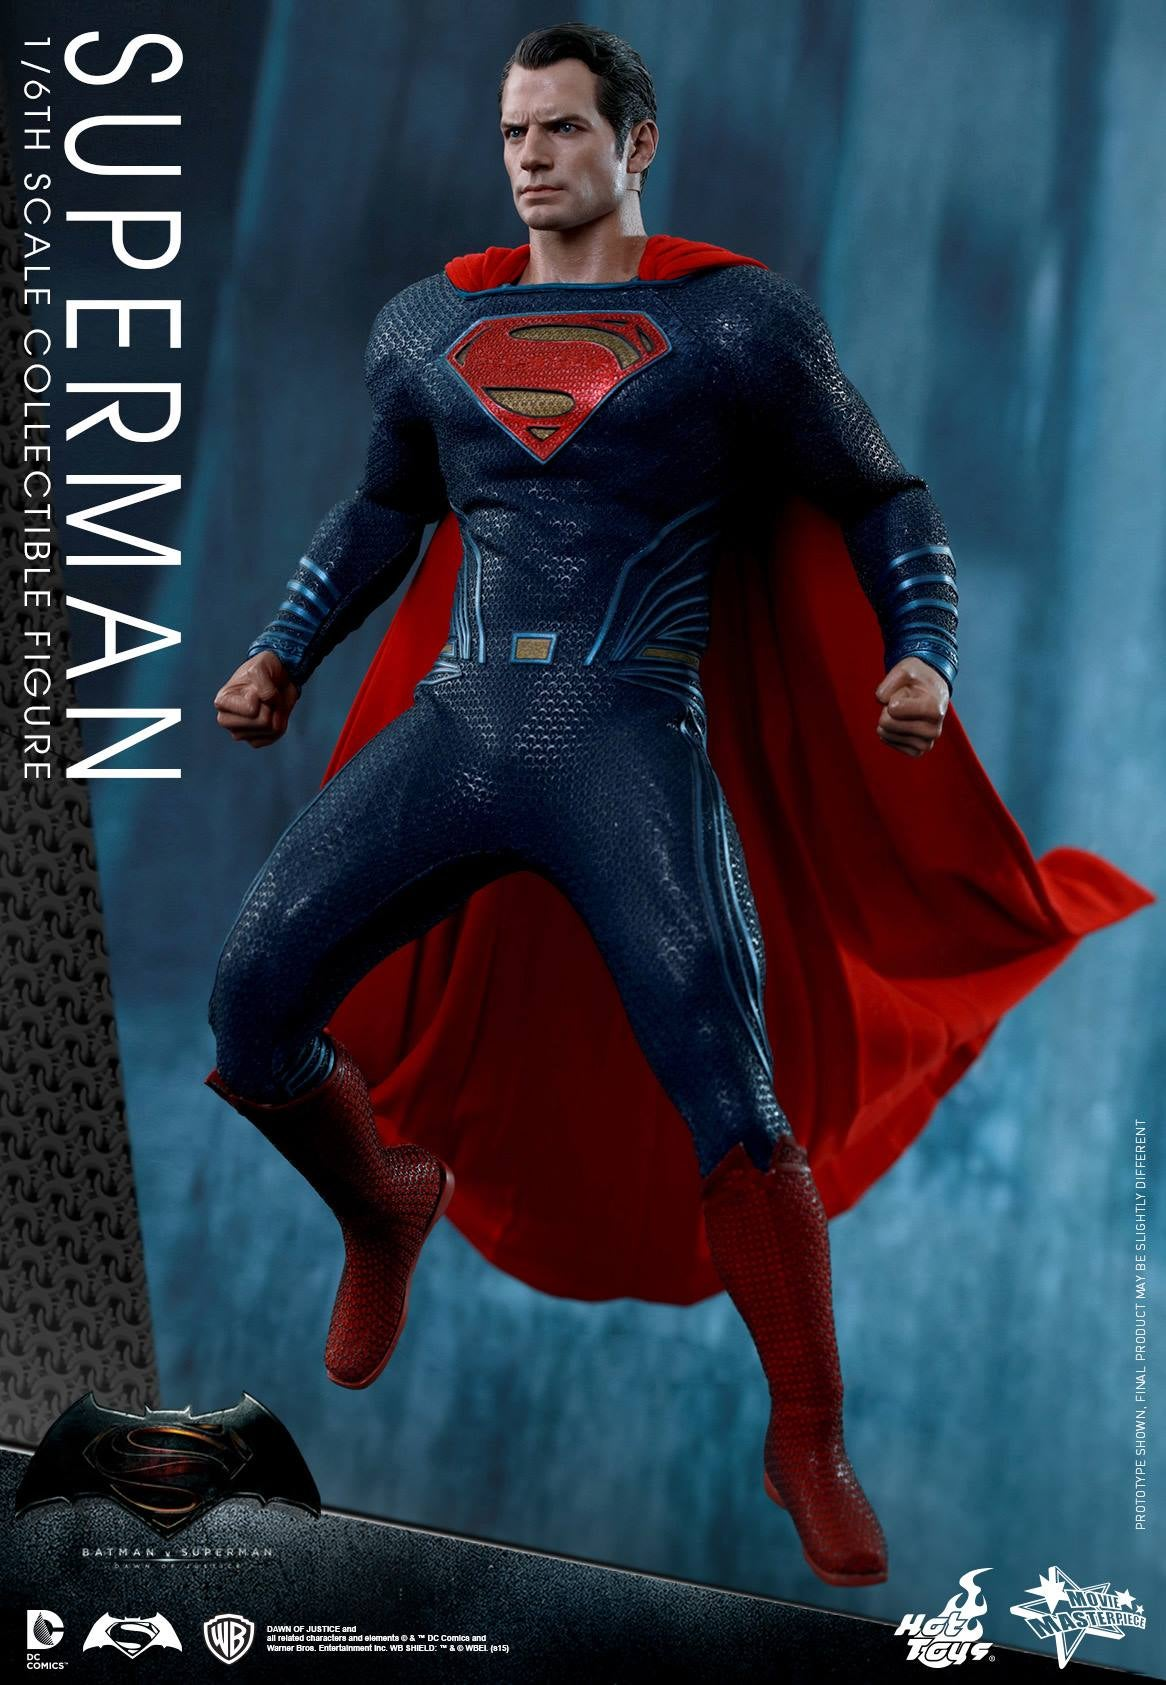 [Action Figures] Todo sobre Action Figures, Hot Toys, Sideshows - Página 6 Bvs-hot-toys-superman-3-162888